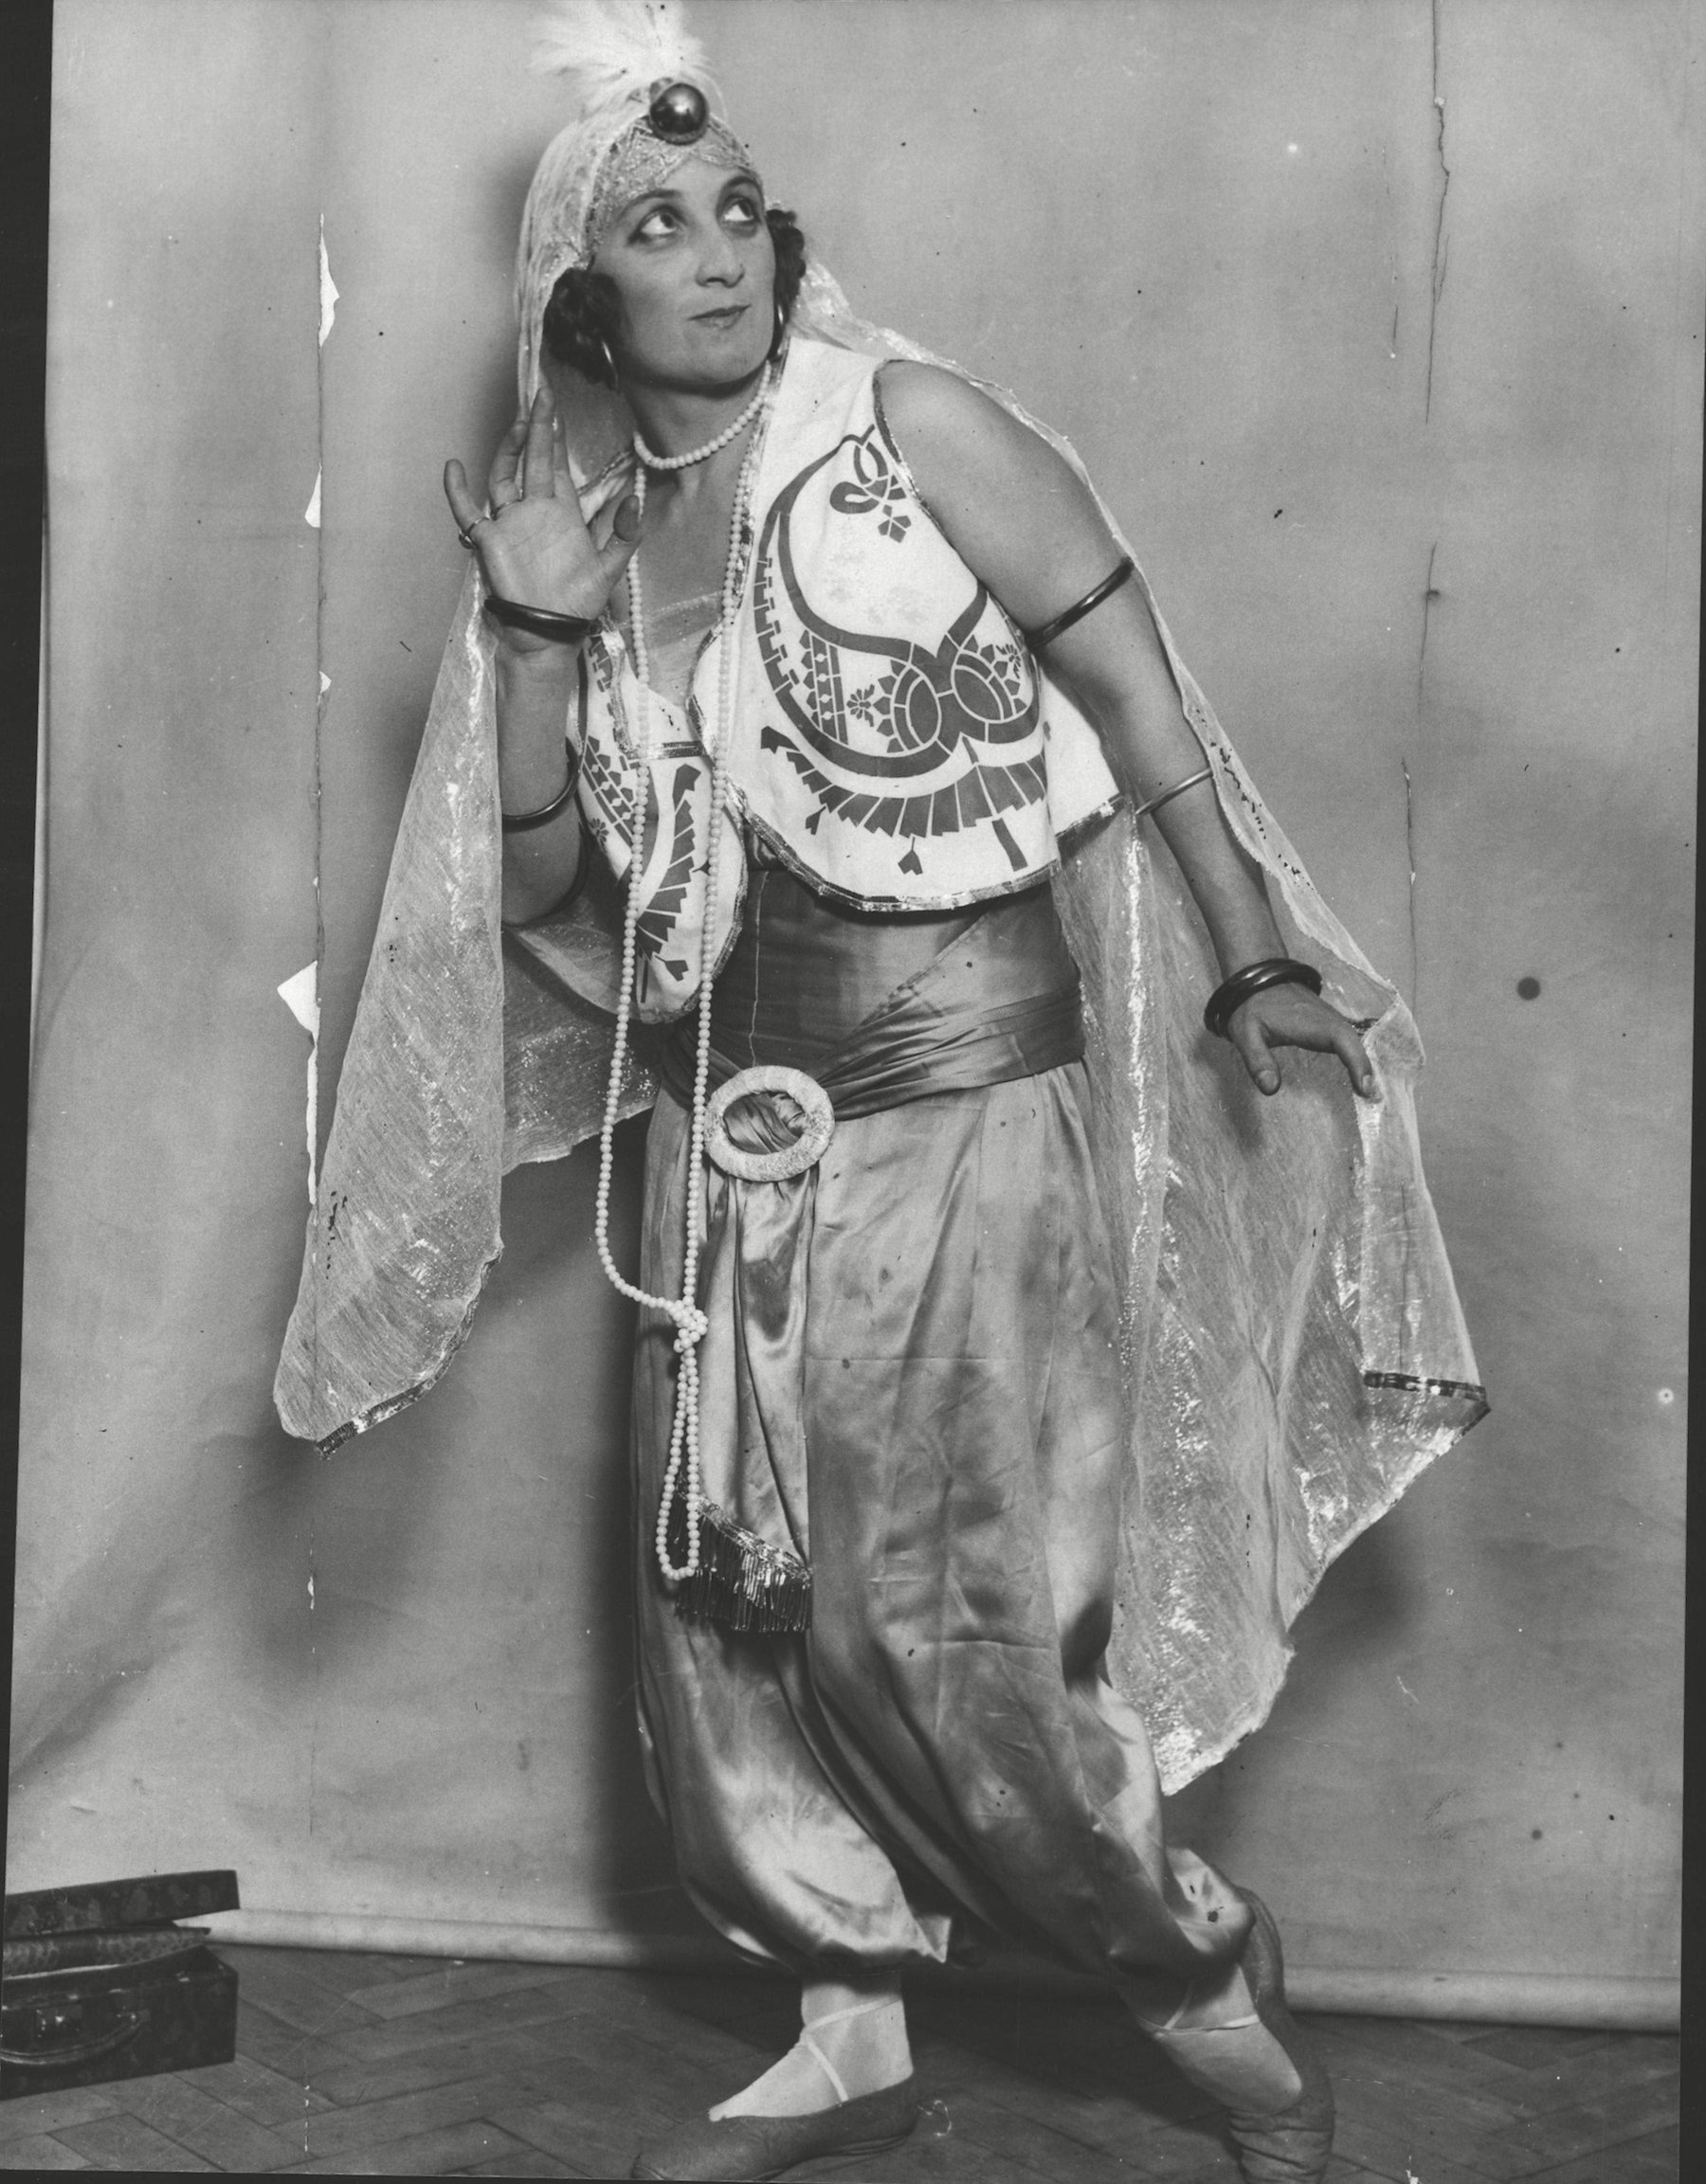 Miss C. H. A. Howard Mercer In The Costume She Will Wear As An Arabian Princess At The Chelsea Arts Ball.